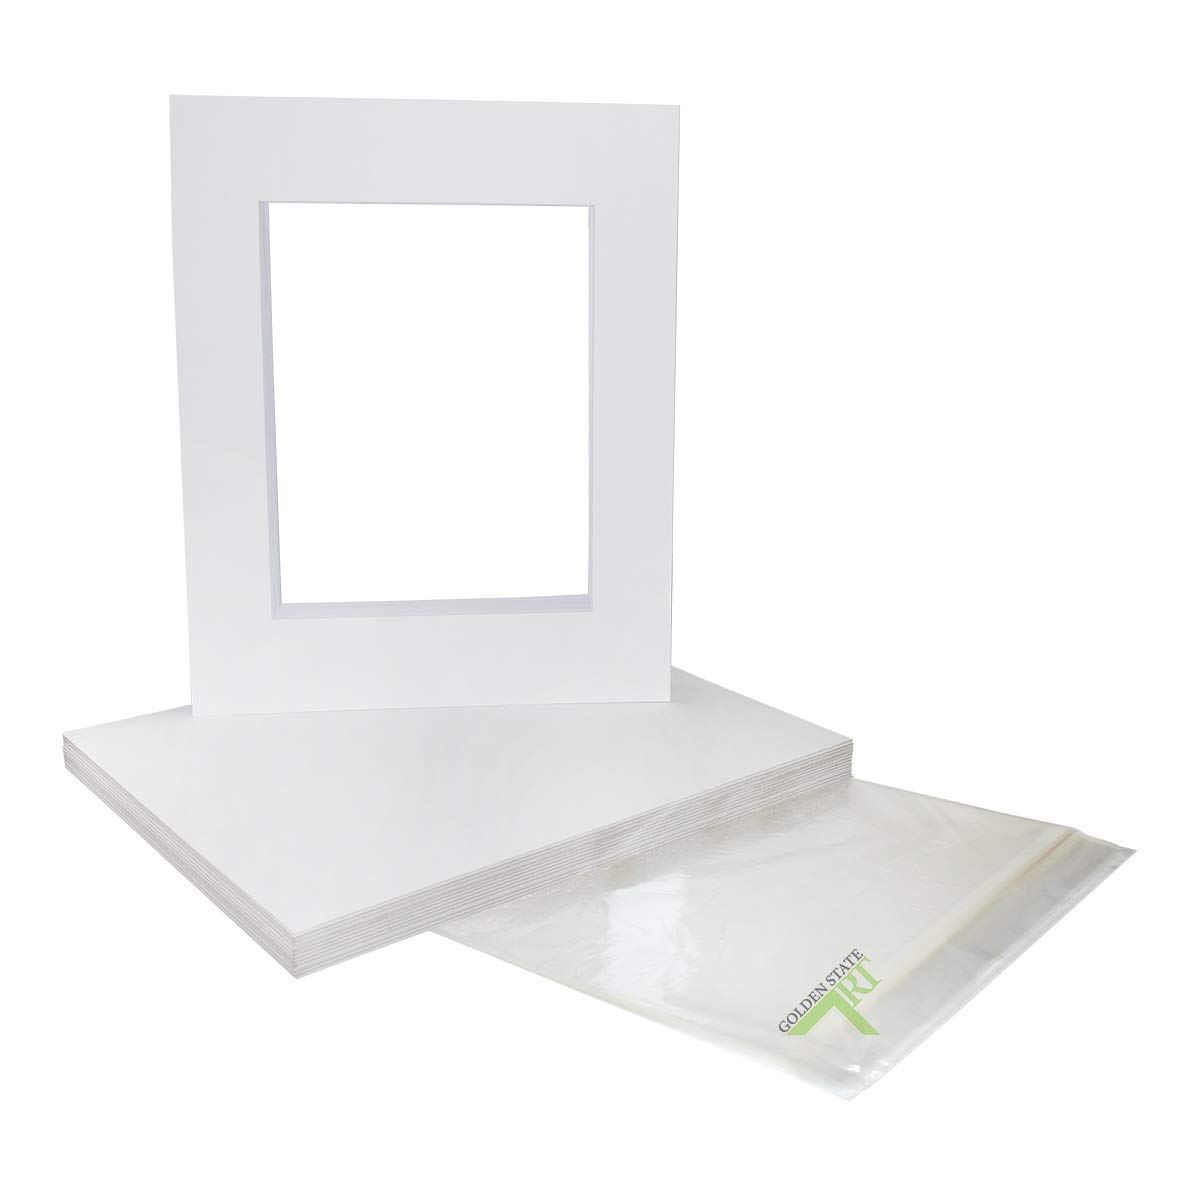 Golden State Art, Pack of 25 White Pre-Cut 16x20 Picture Mat for 11x14 Photo with White Core Bevel Cut Mattes Sets. Includes 25 High Premier Acid Free Mats & 25 Backing Board & 25 Clear Bags by Golden State Art